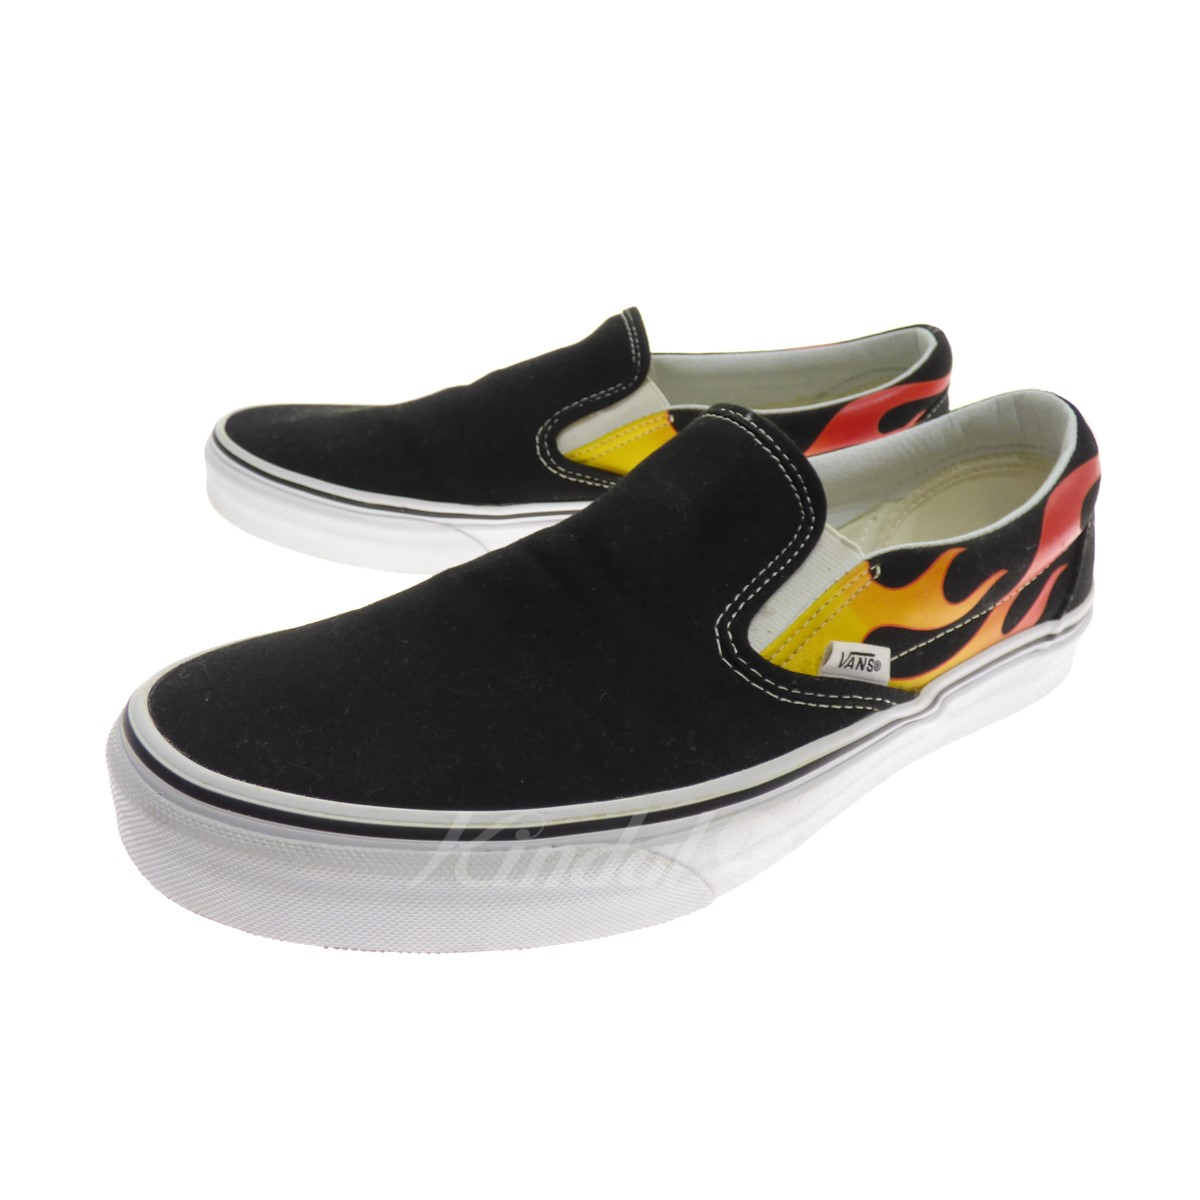 094ca494a74 kindal  VANS Classic Slip-On slip-on shoes sneakers